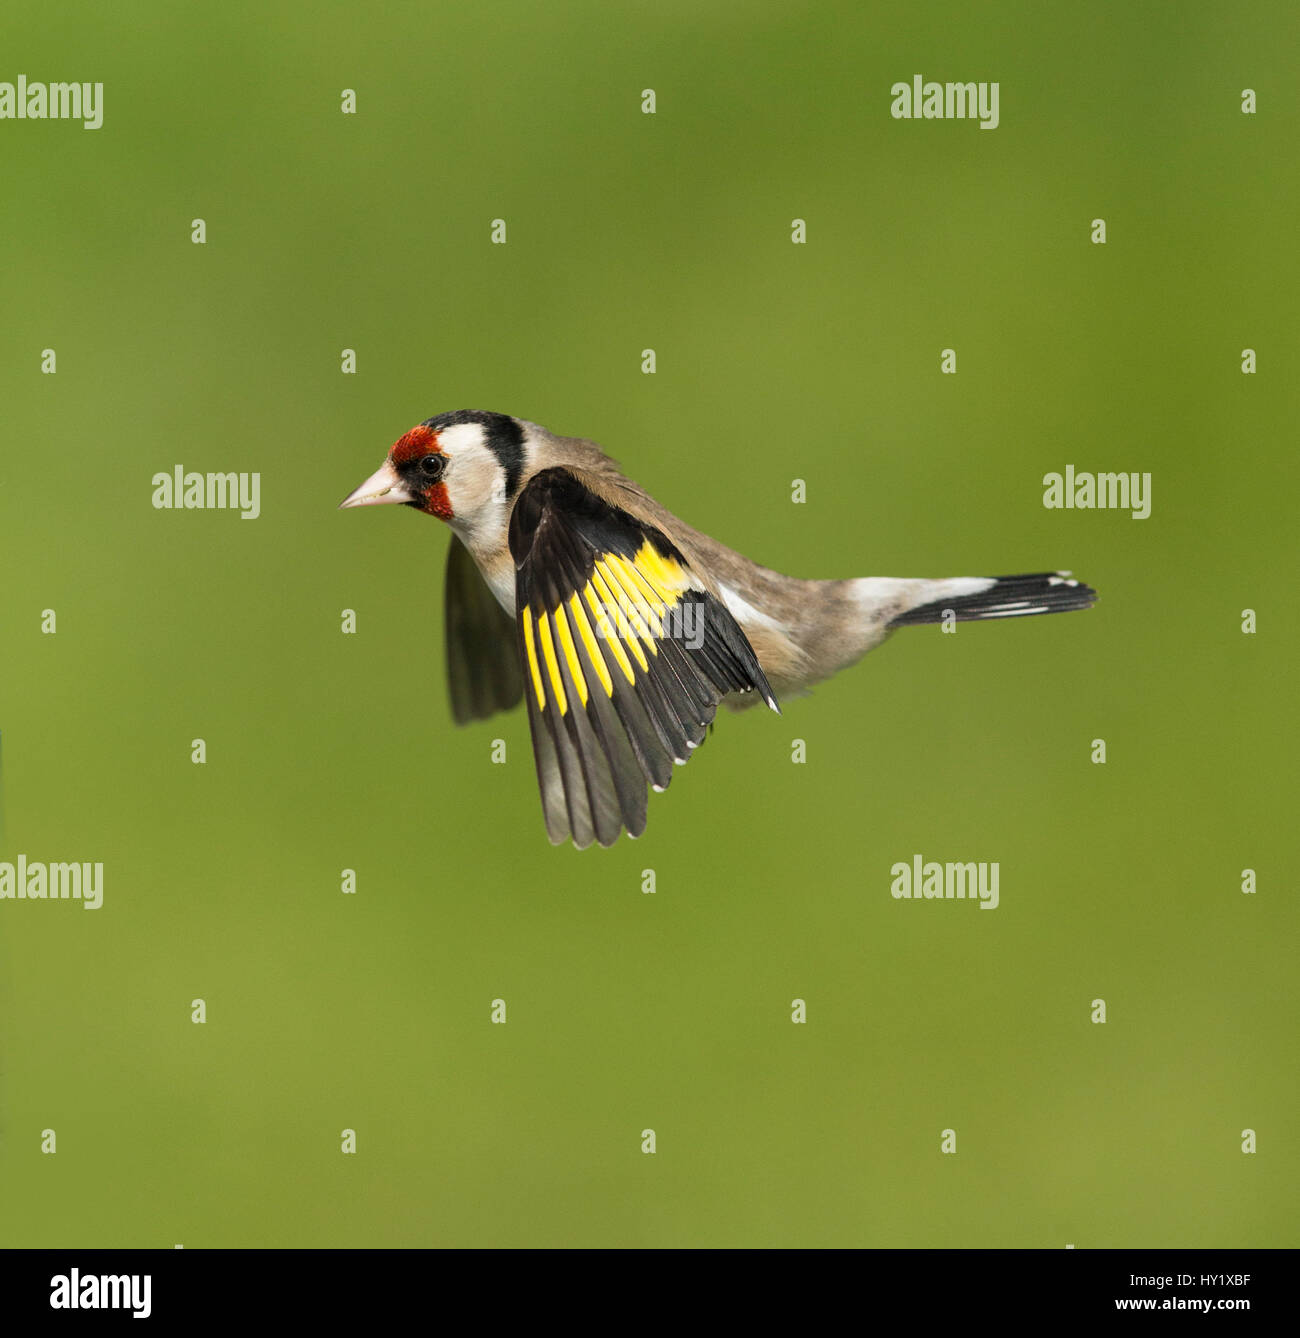 Goldfinch (Carduelis carduelis) in flight. Scotland, UK. May. Stock Photo